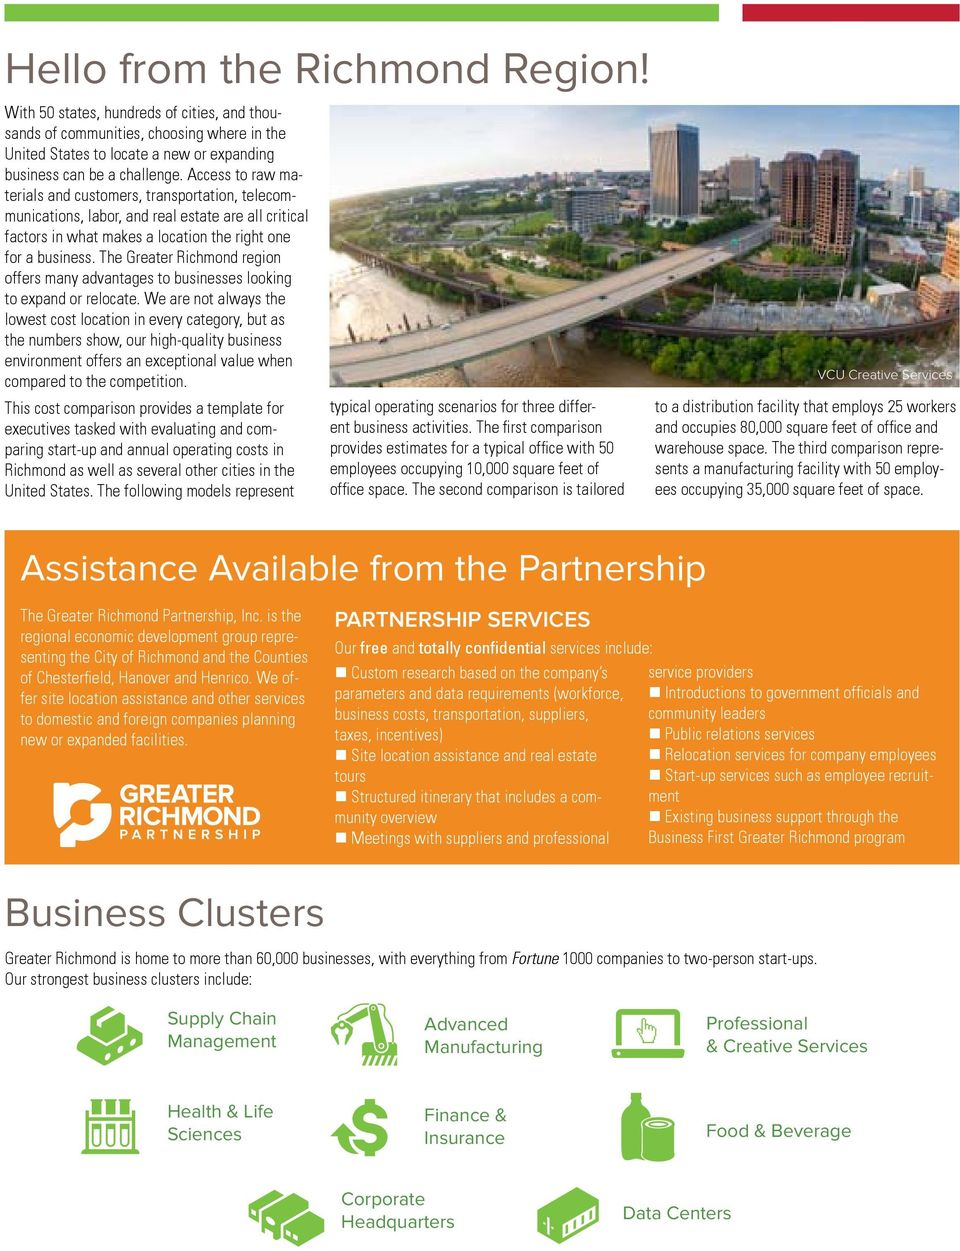 The Greater ichmond region offers many advantages to businesses looking to expand or relocate.